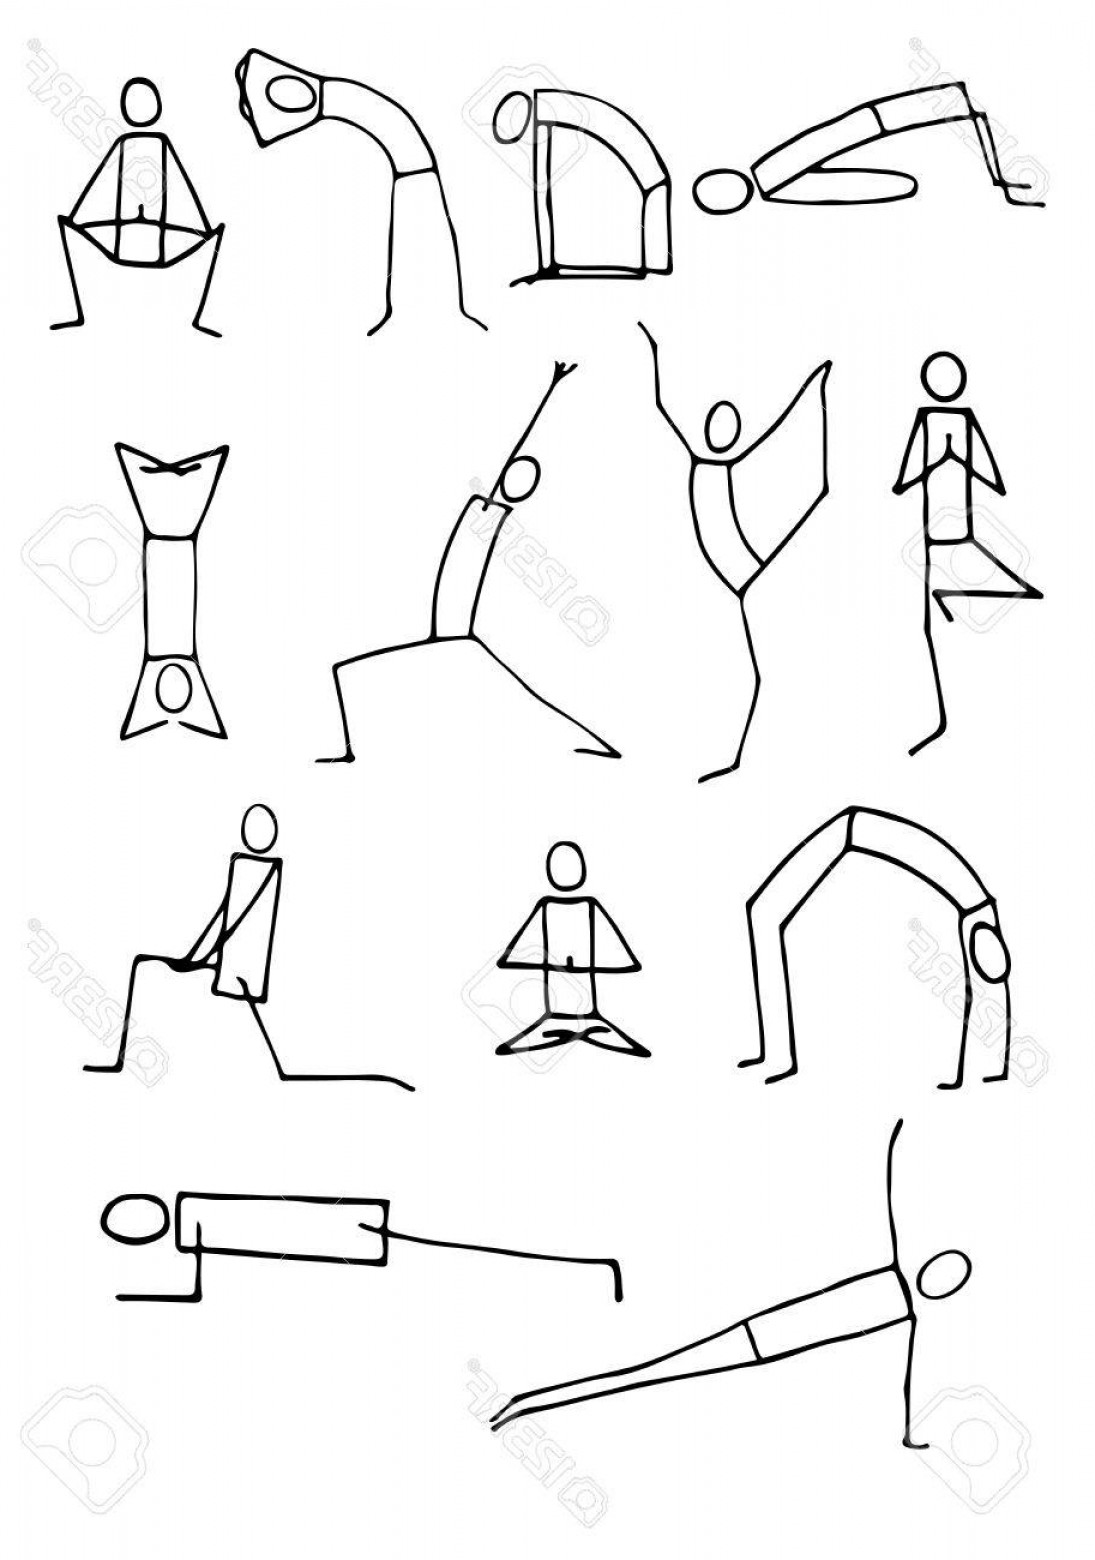 Vector Stick Figure Yoga Positions: Photostock Illustration Set Of Hand Drawn Stickman Yoga Poses Isolated On White Background Vector Illustration